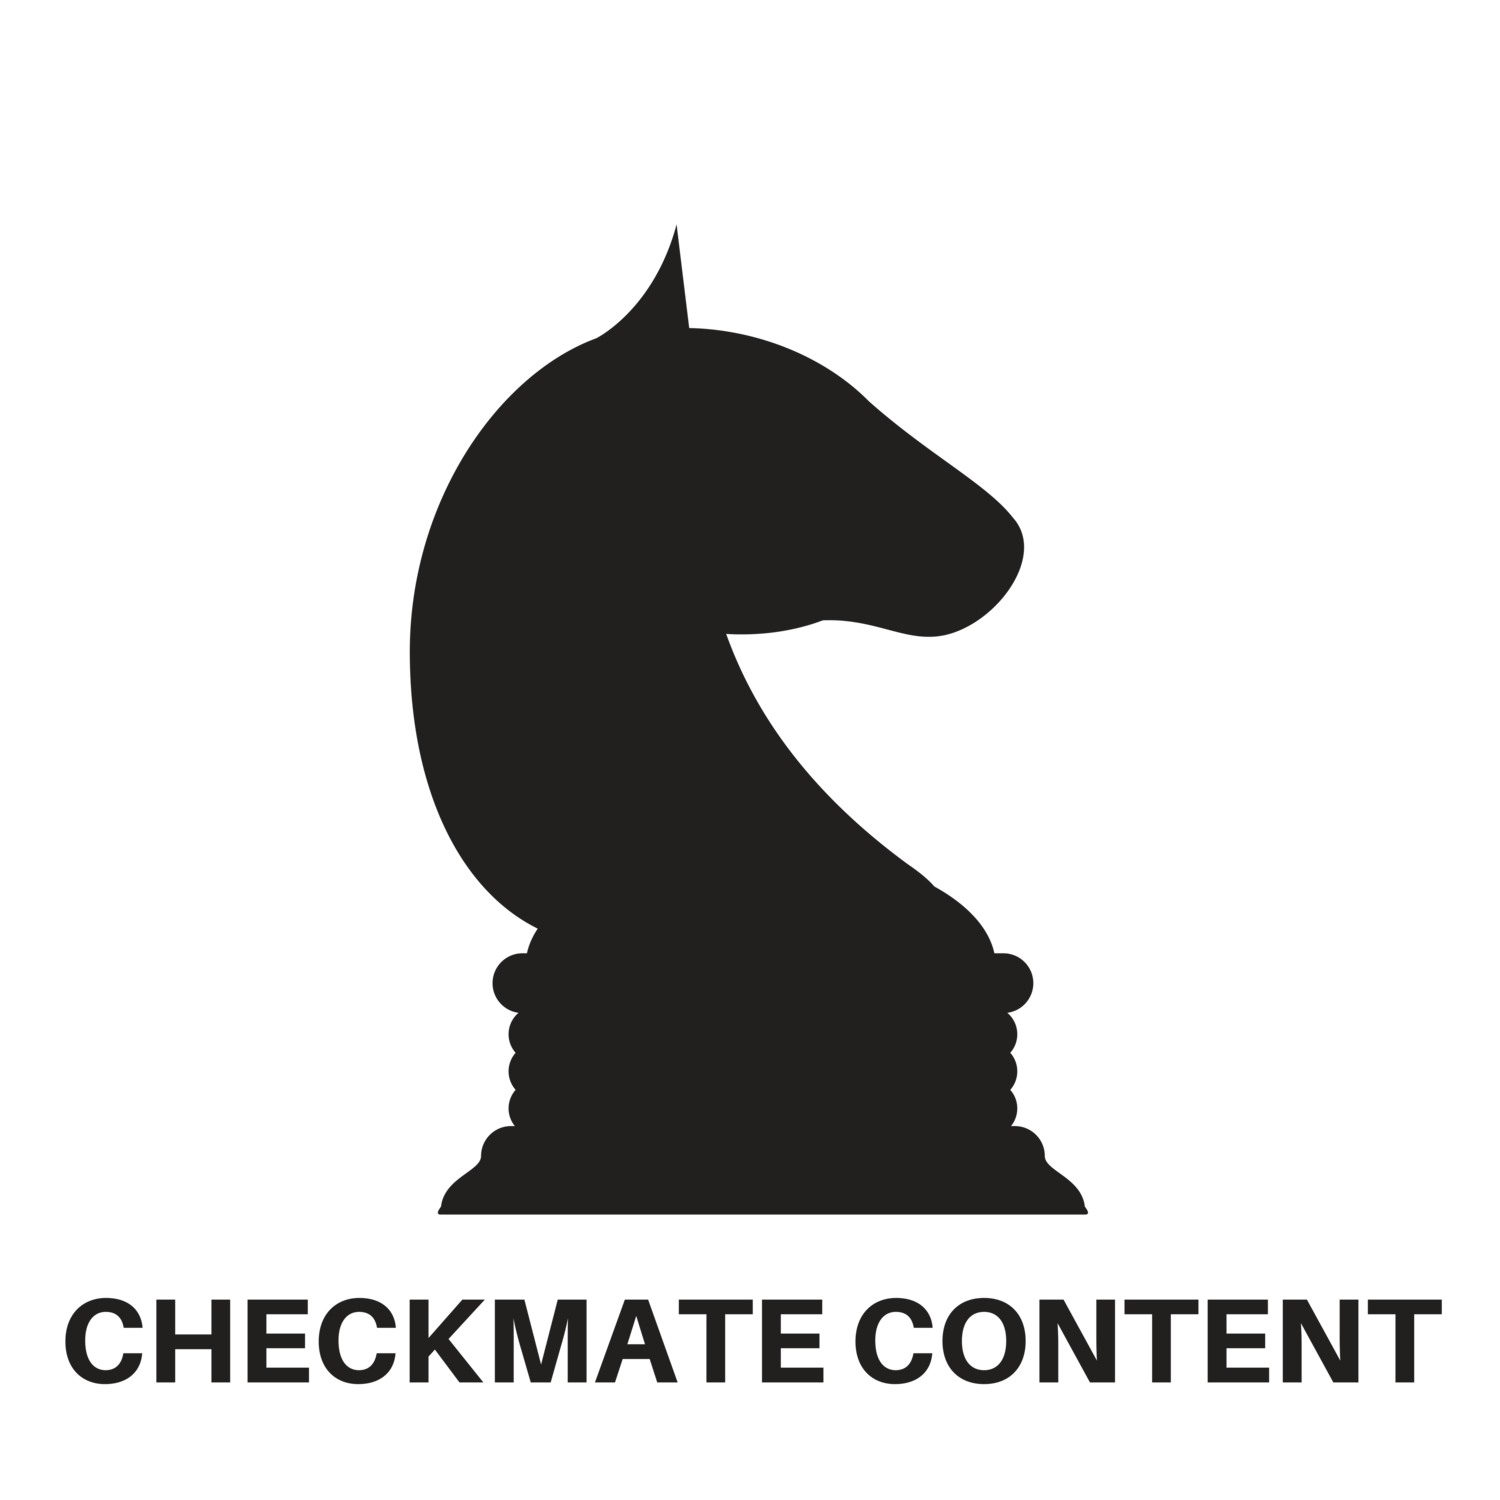 Checkmate Content